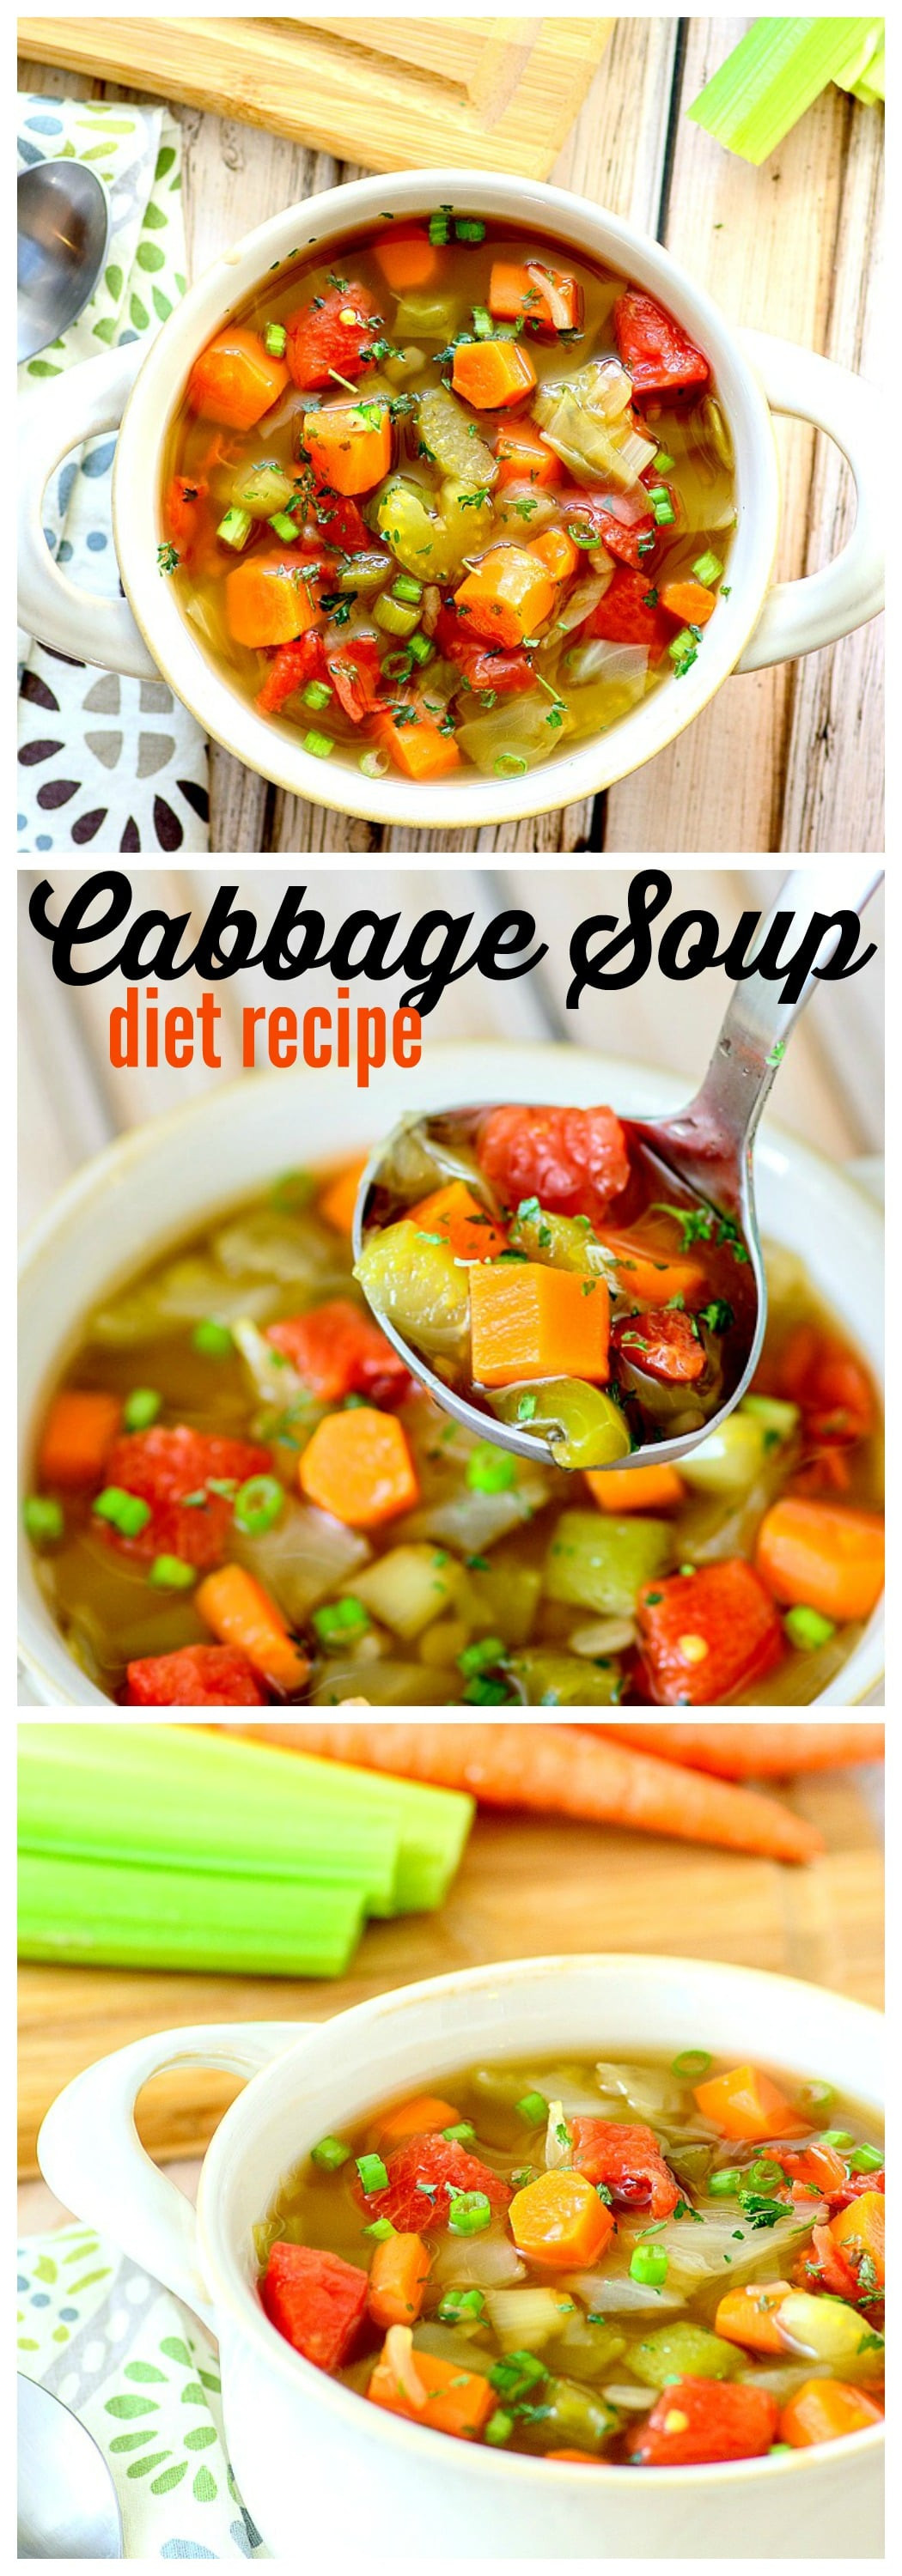 Cabbage Soup Recipe Diet  does the cabbage soup t work